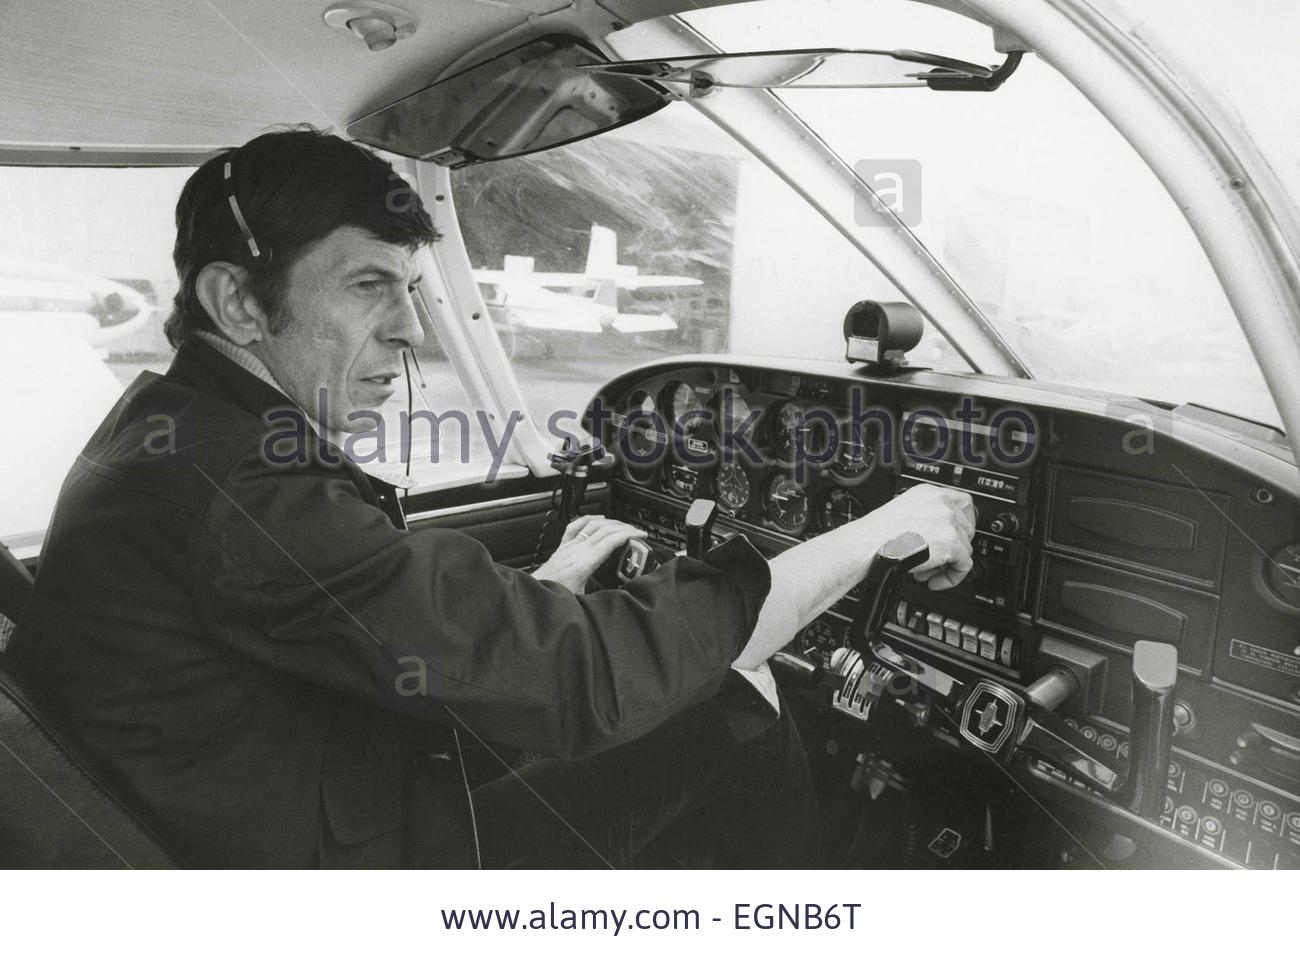 file-27th-feb-2015-leonard-nimoy-the-actor-who-won-a-global-following-EGNB6T